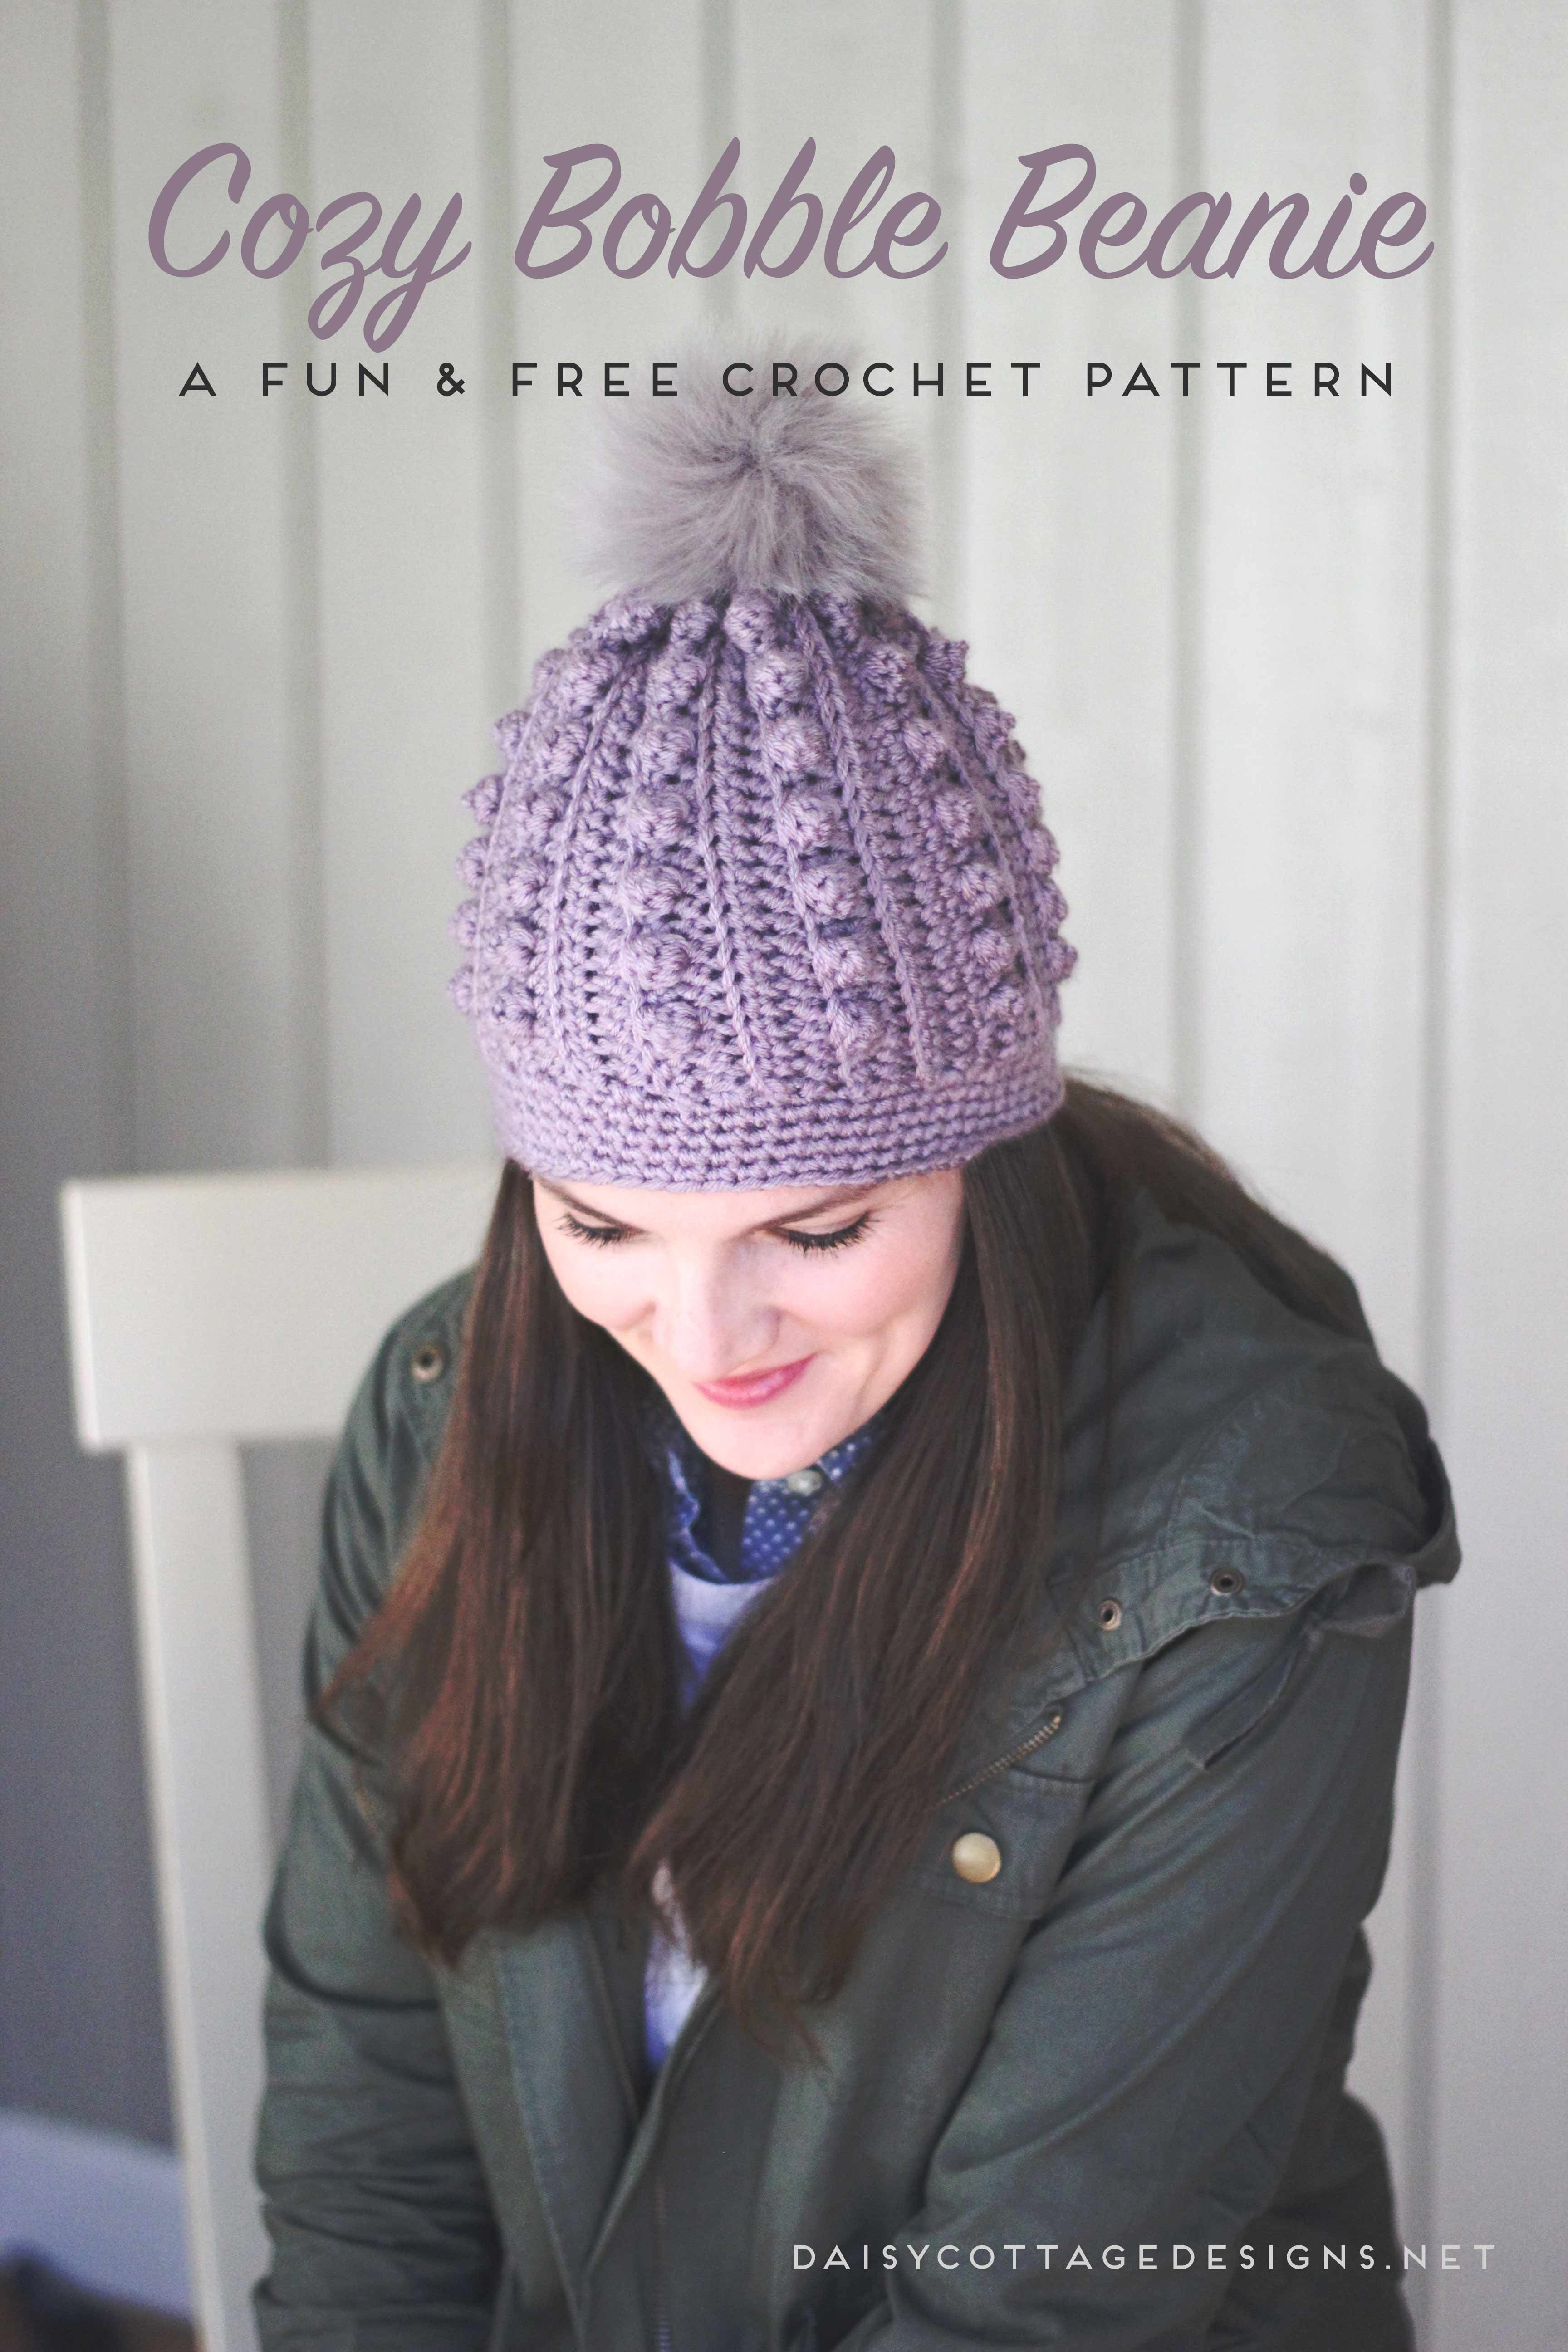 Bobble Beanie Crochet Pattern | Cottage design, Hat crochet and Free ...